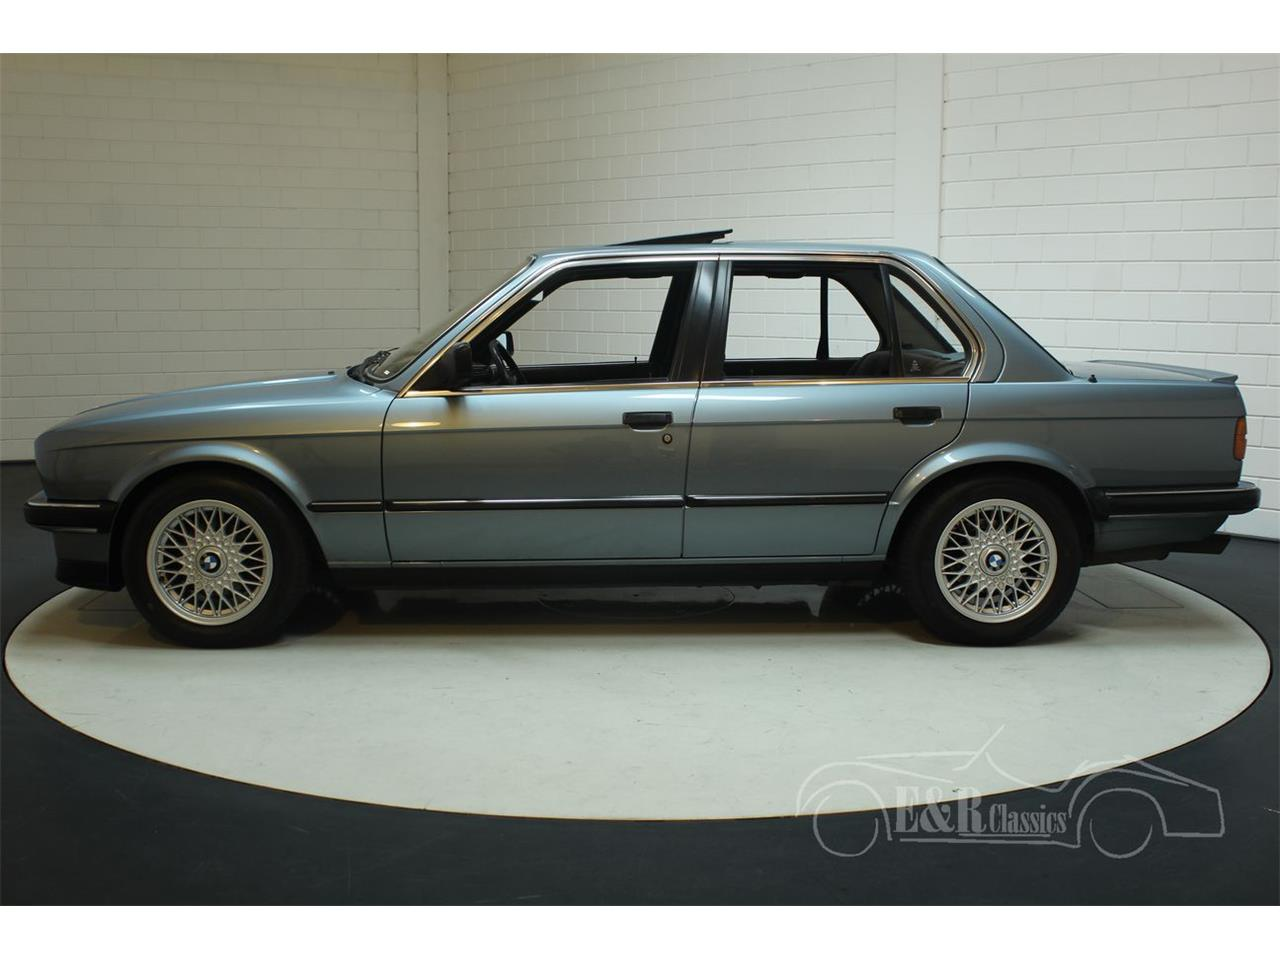 Large Picture of 1986 BMW 325i located in Waalwijk - Keine Angabe - - $33,850.00 - PGT1